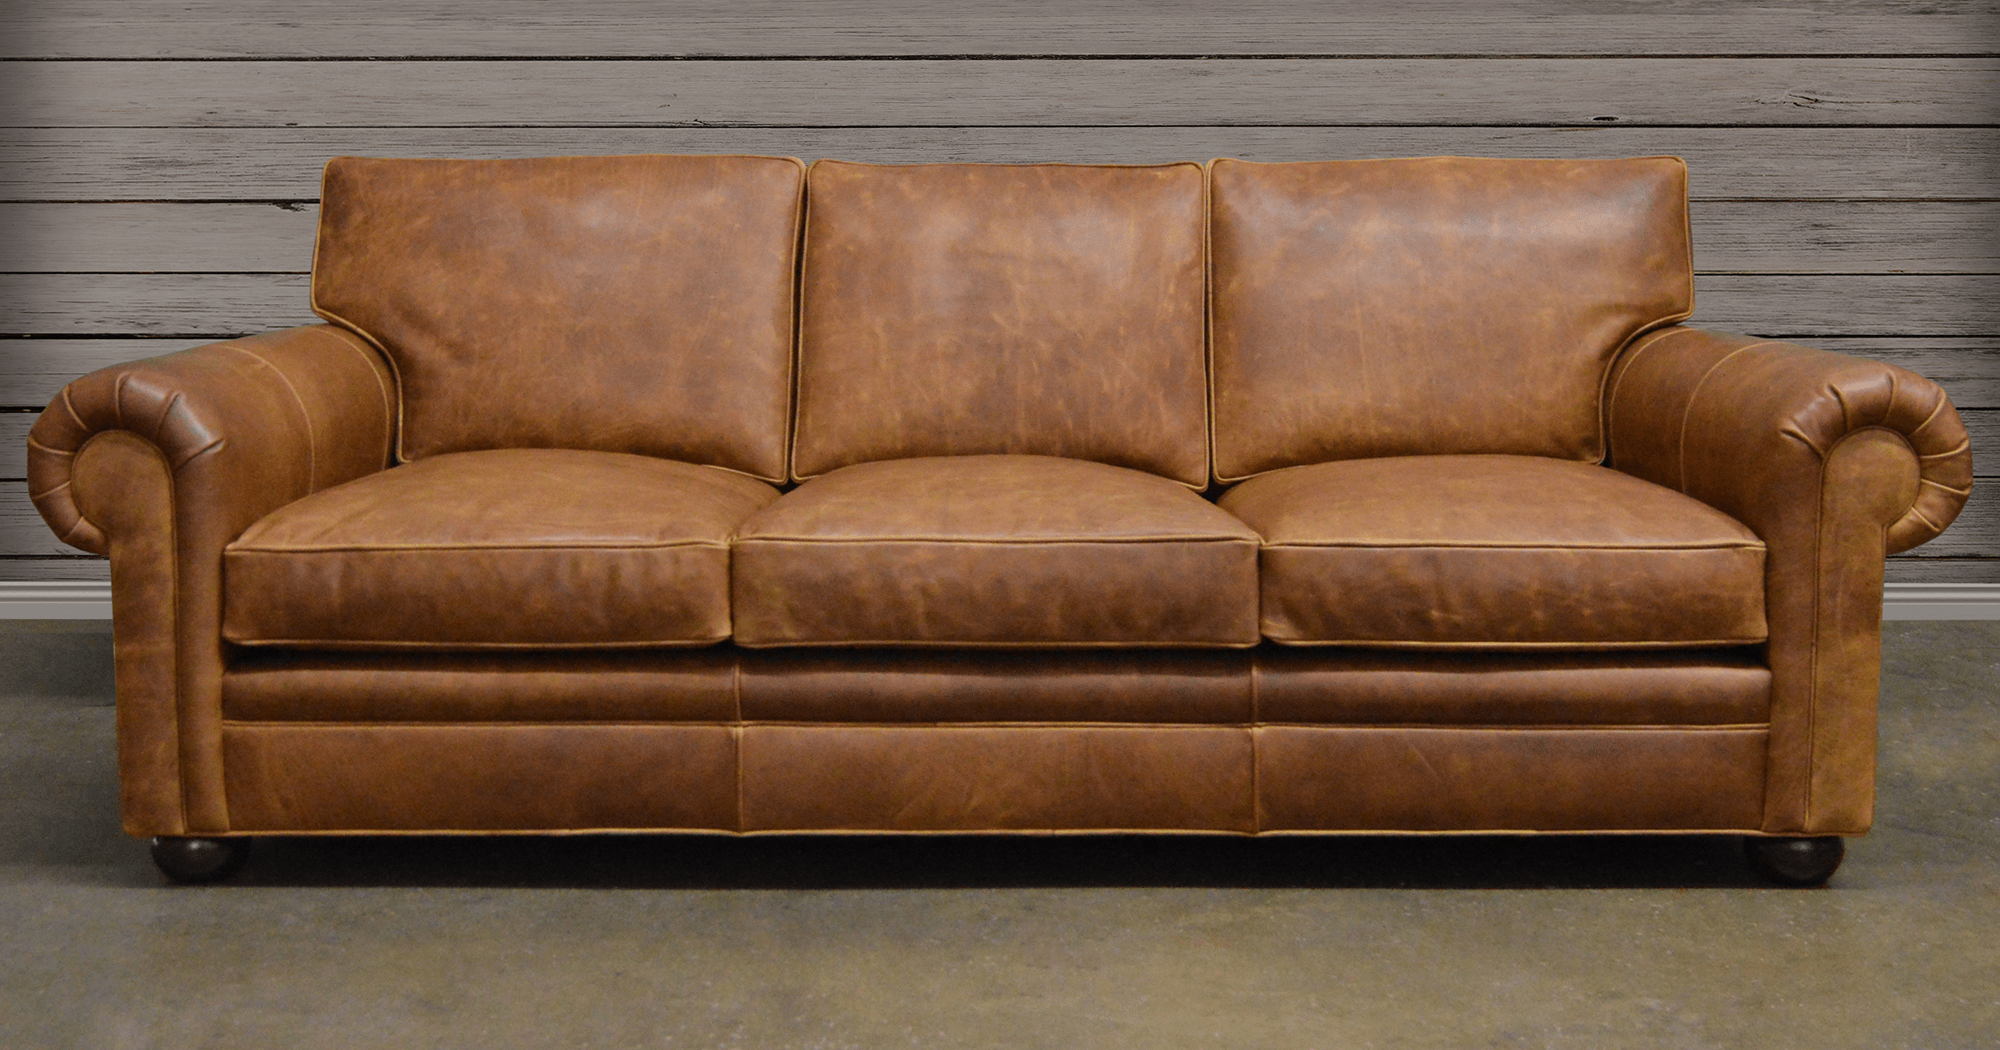 American Made Leather Furniture, Leather Sofas, Leather